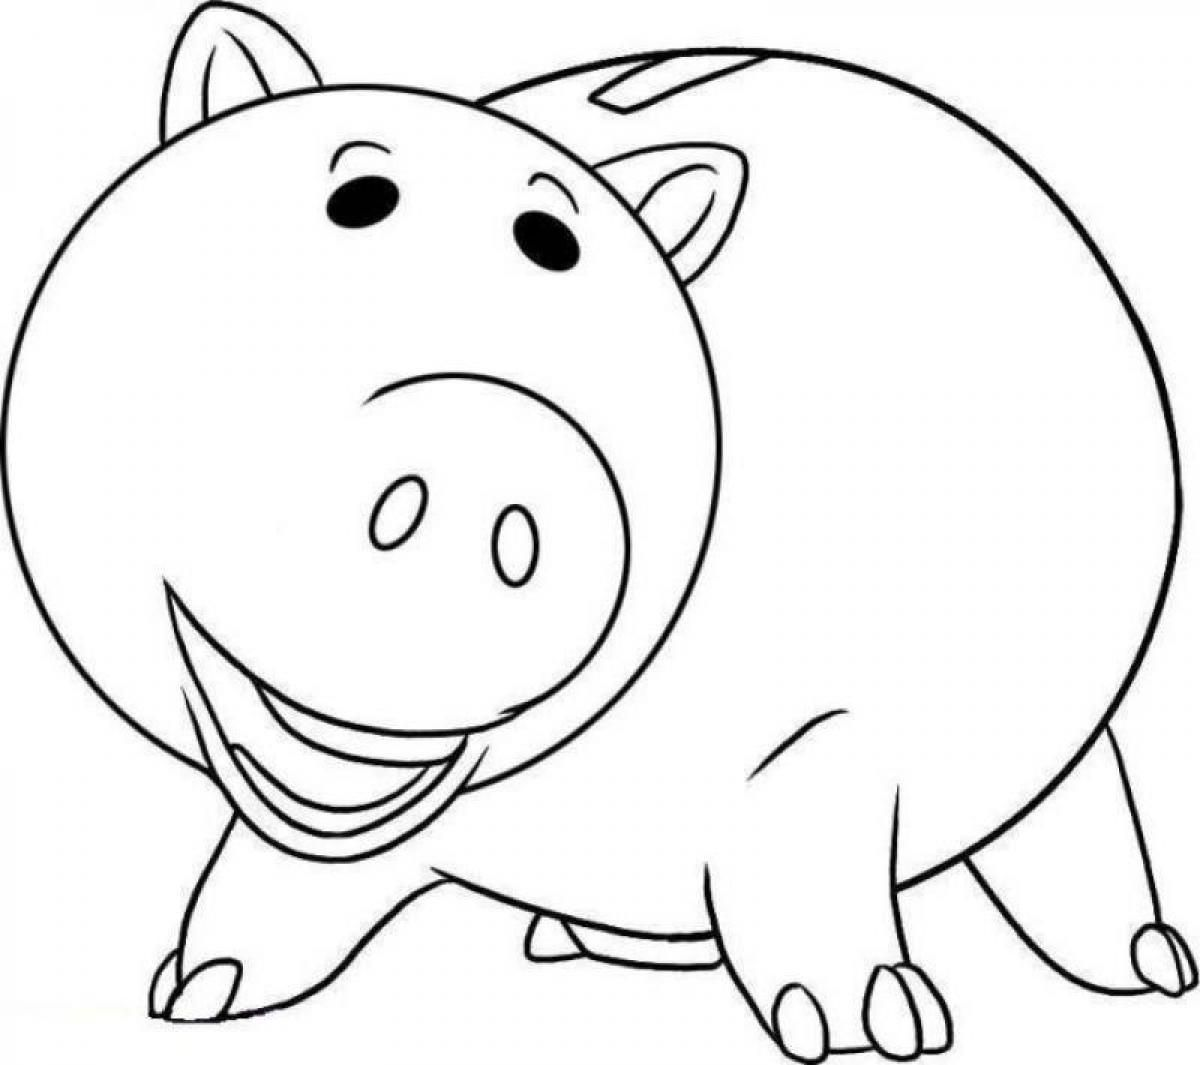 Toy Story Hamm Coloring Pages 3 By Mary Immagini Toy Story